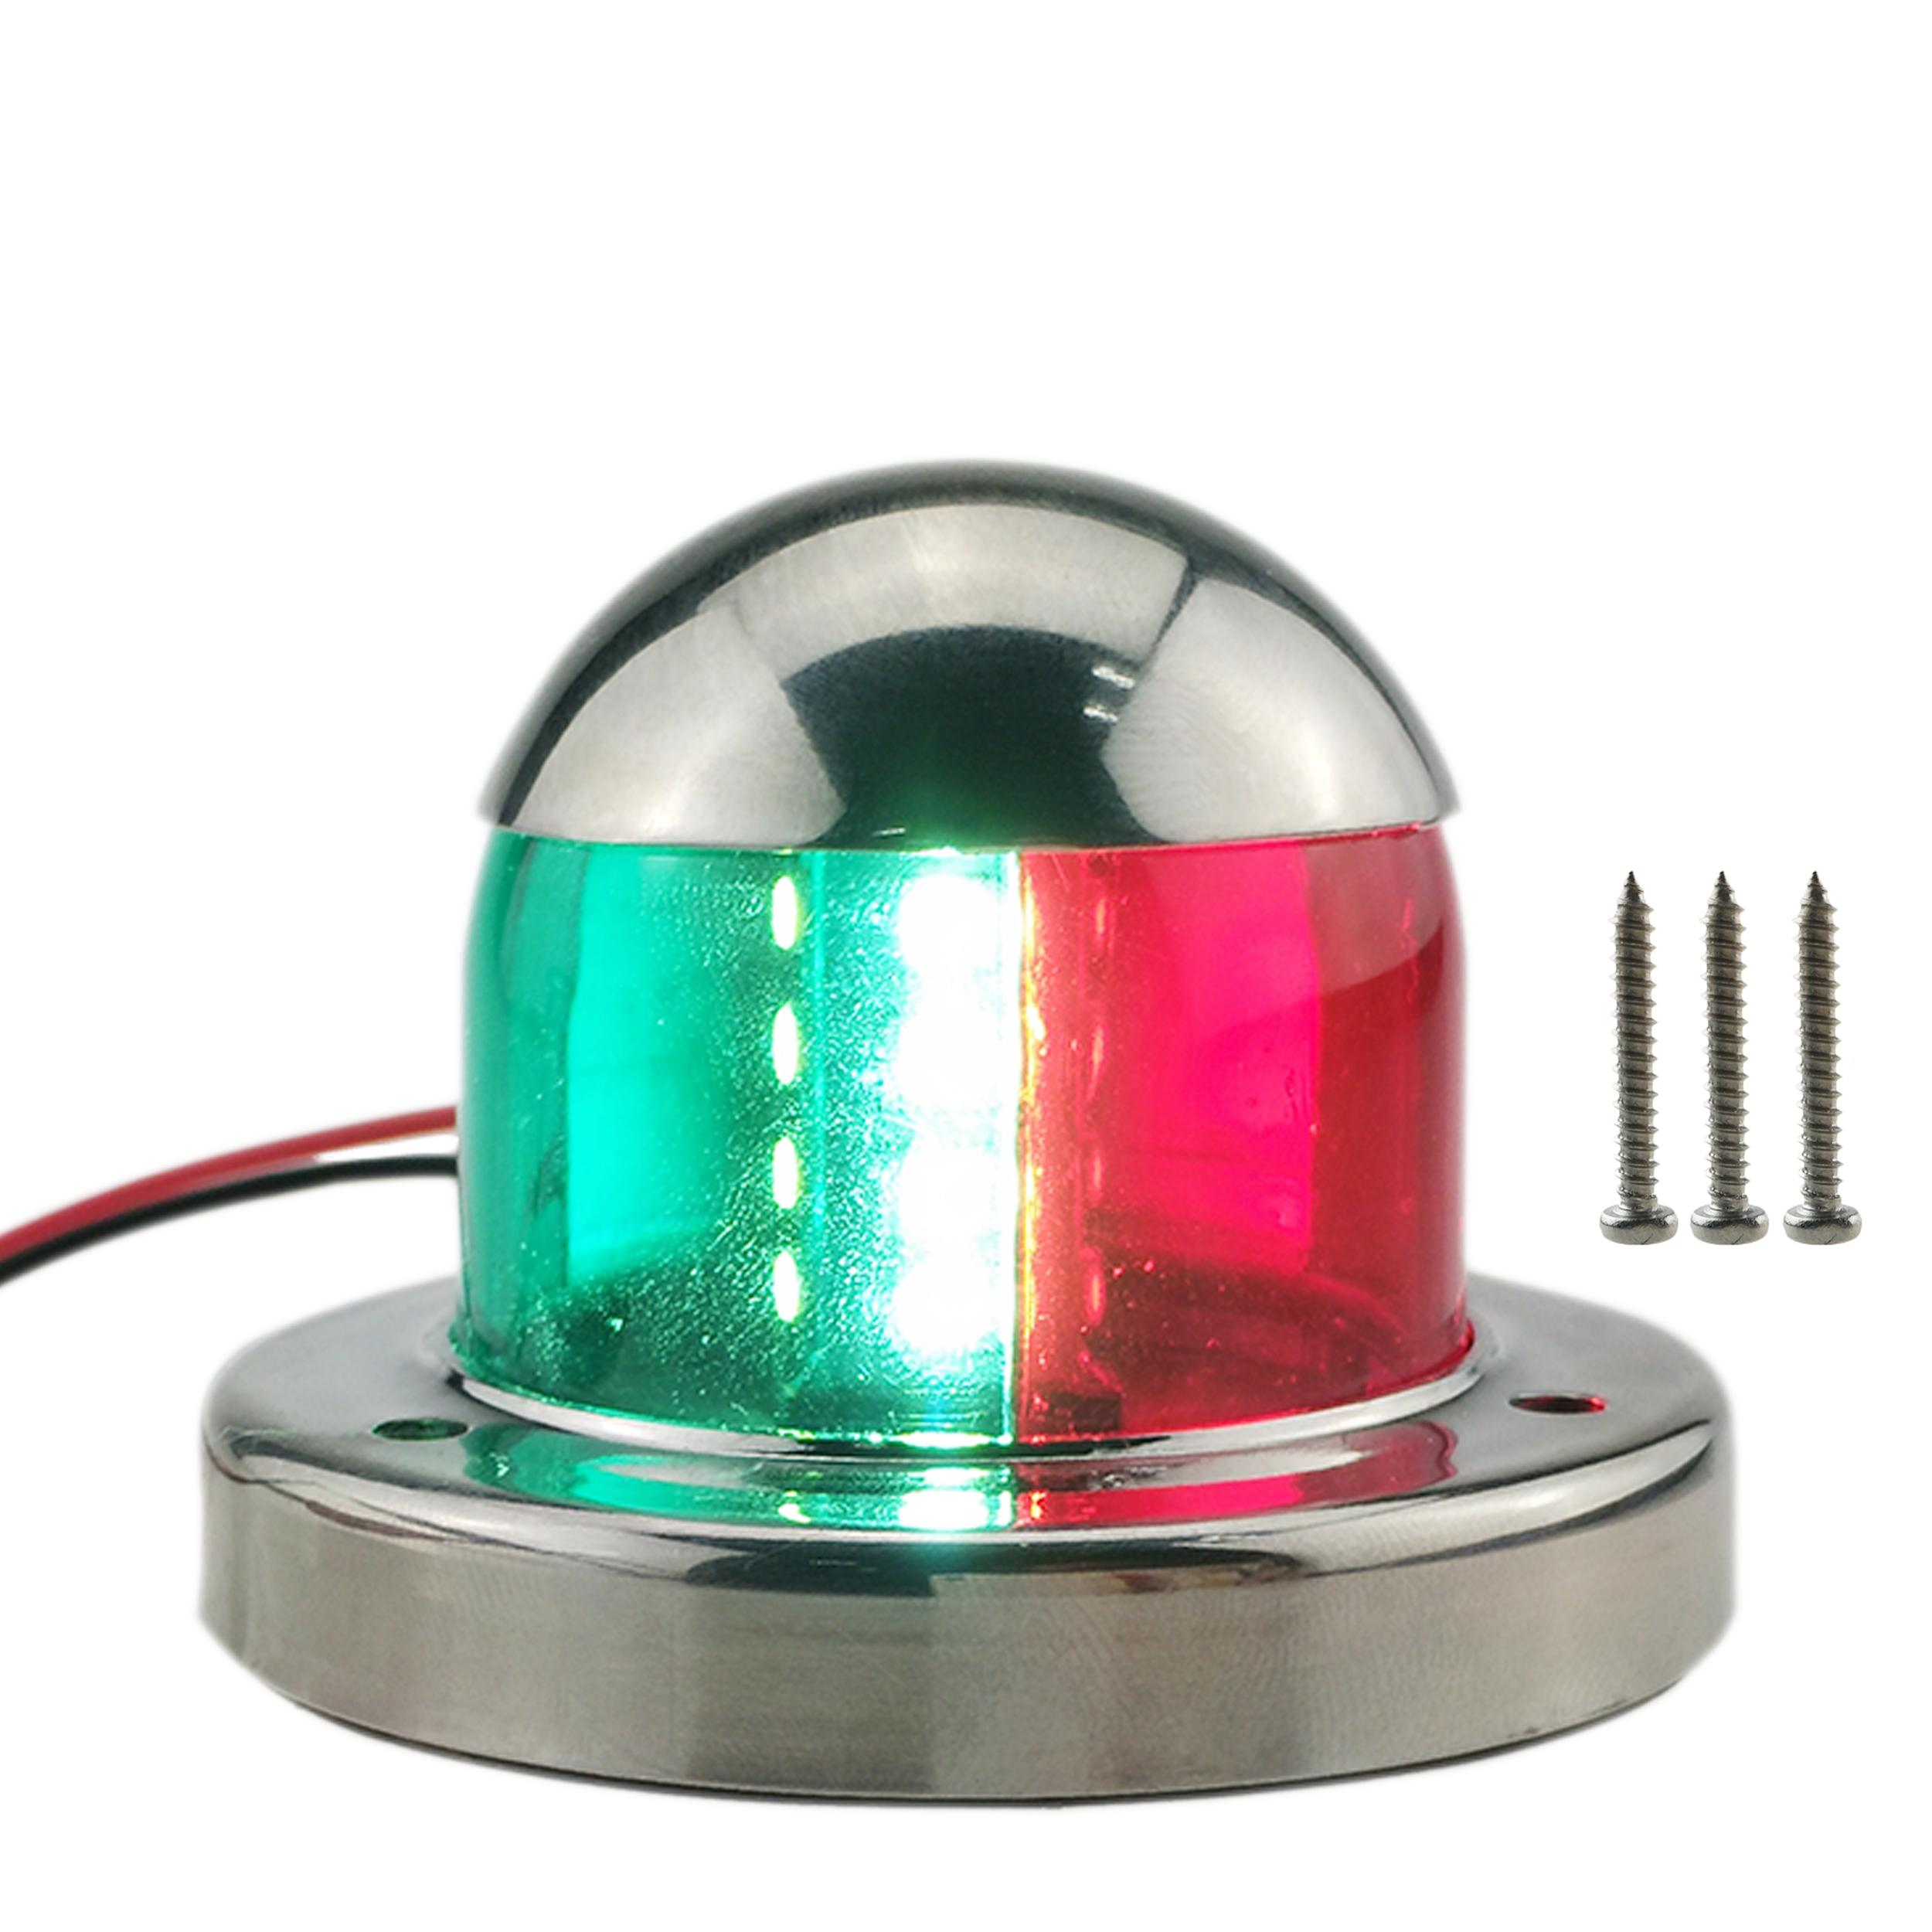 t and solar know you led green lot index lights light parking don what lighting